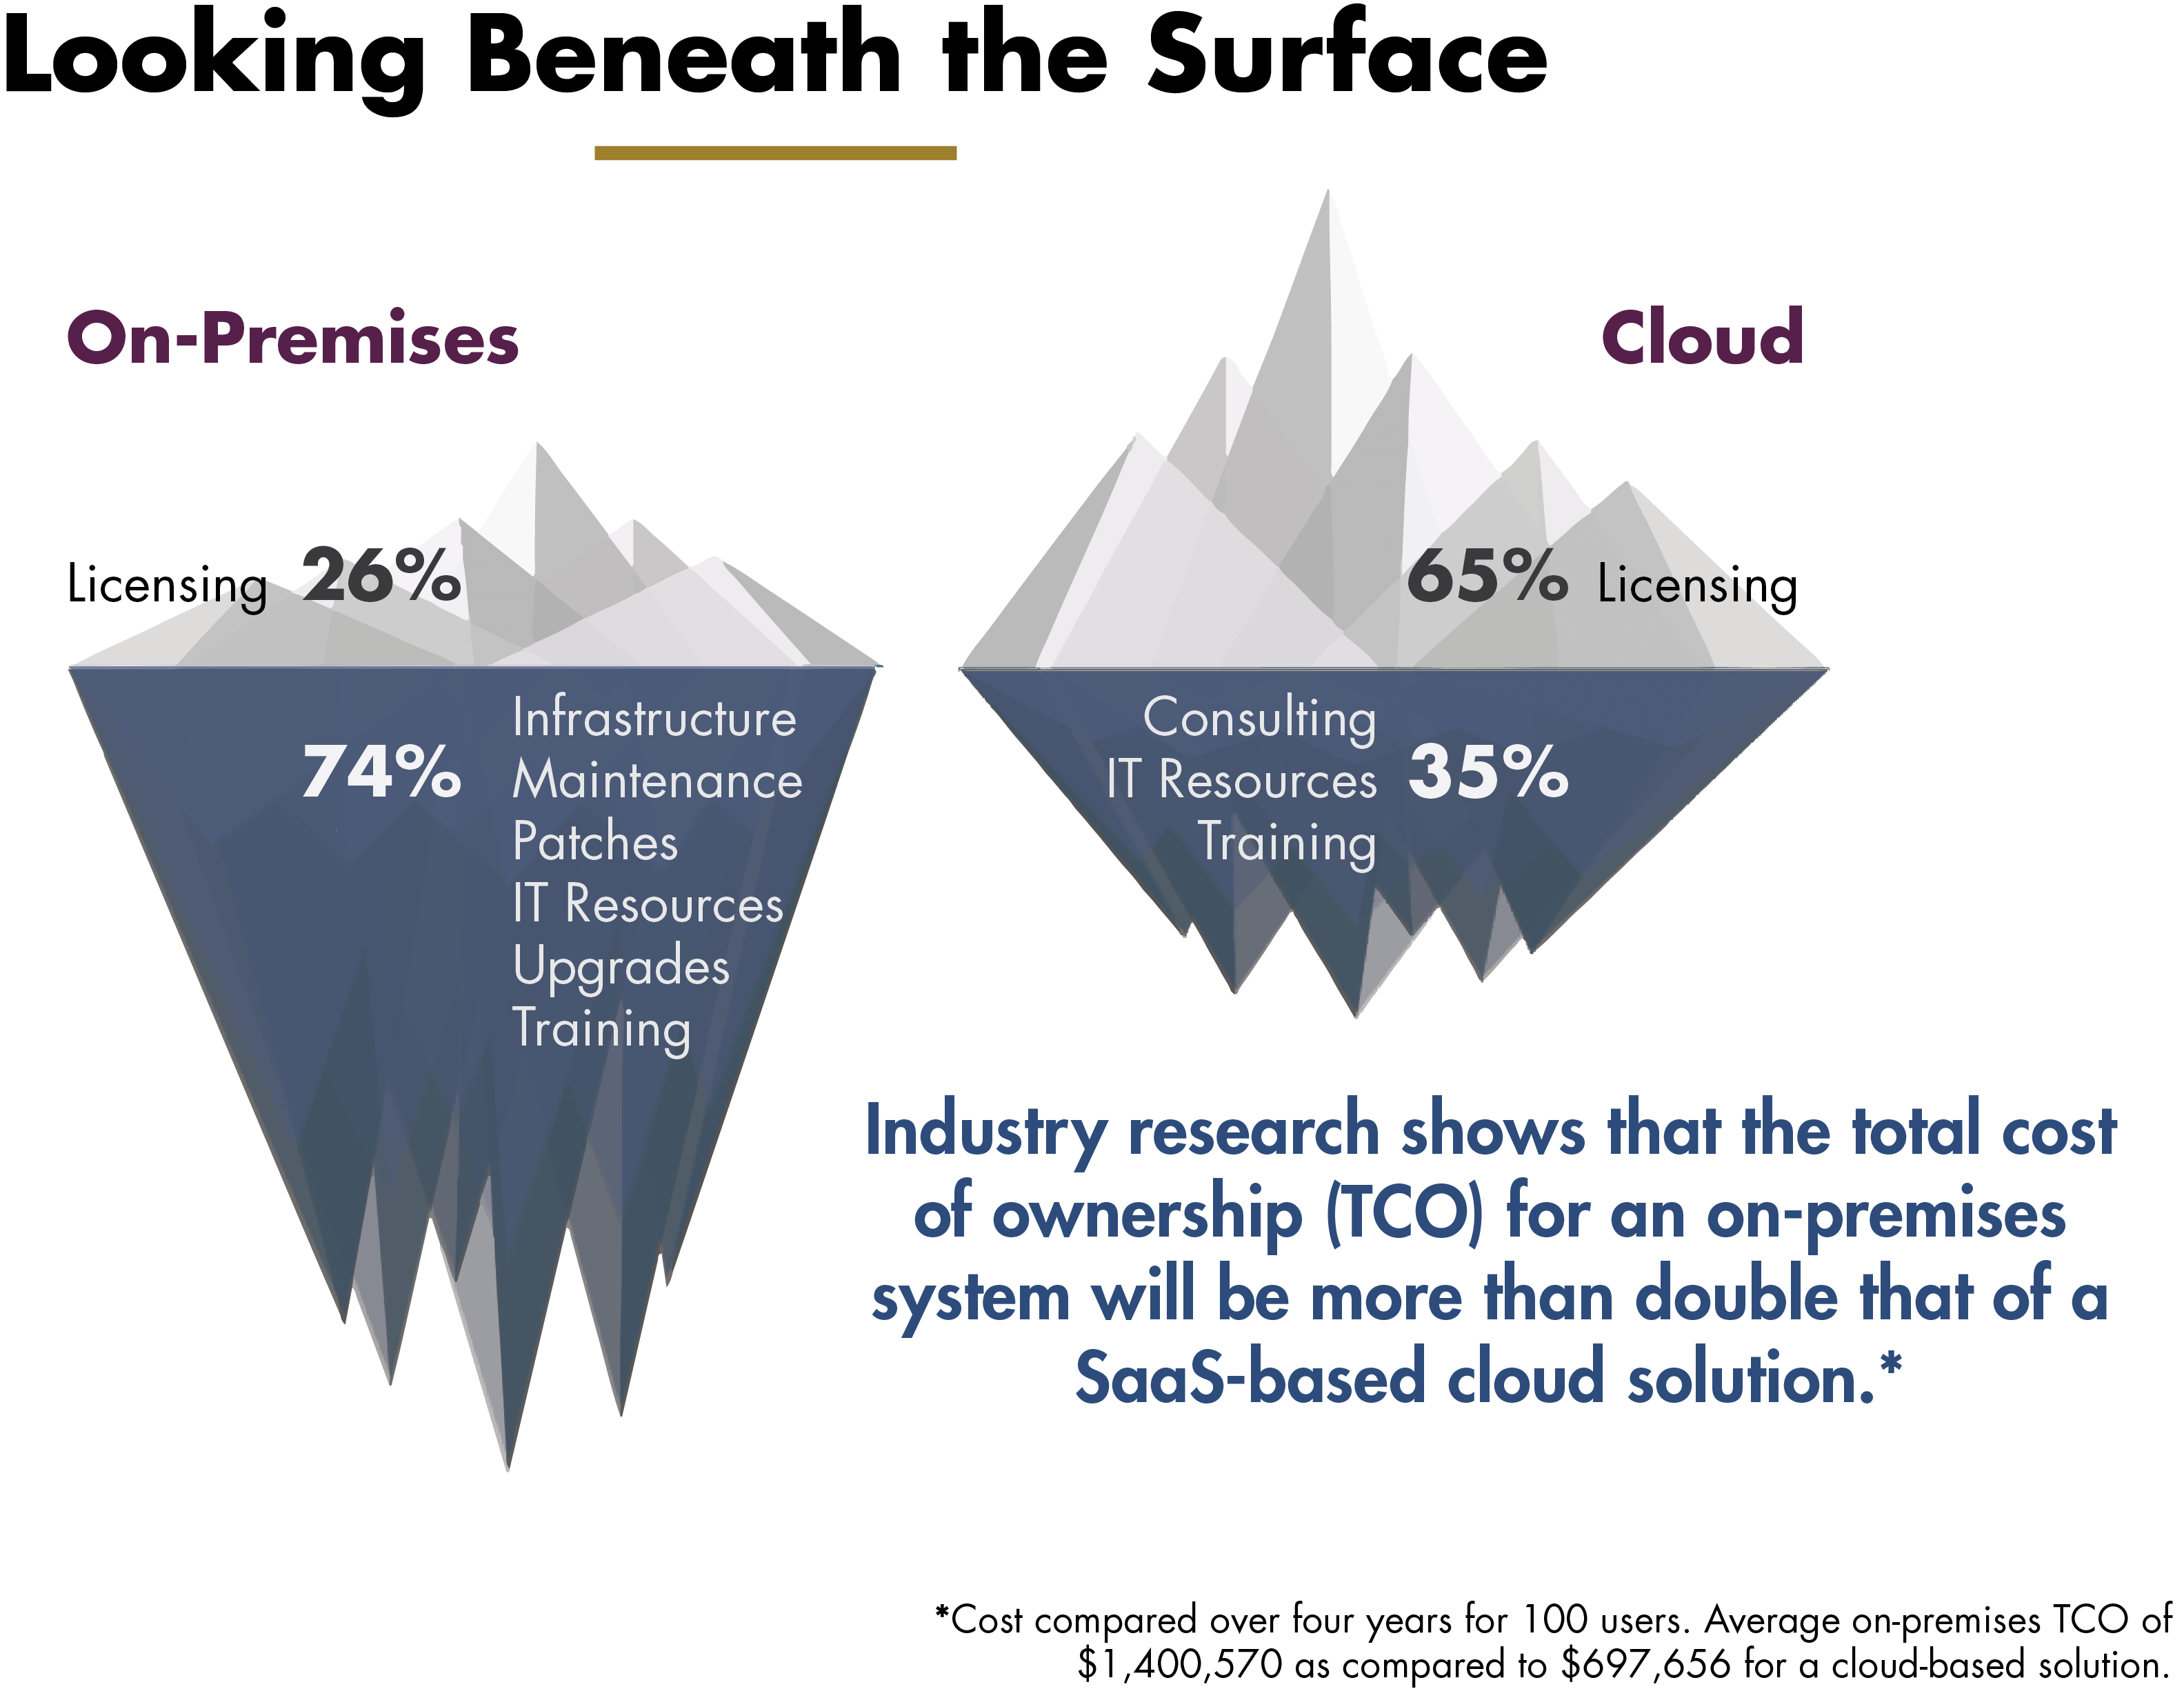 Cloud vs On Premise costs